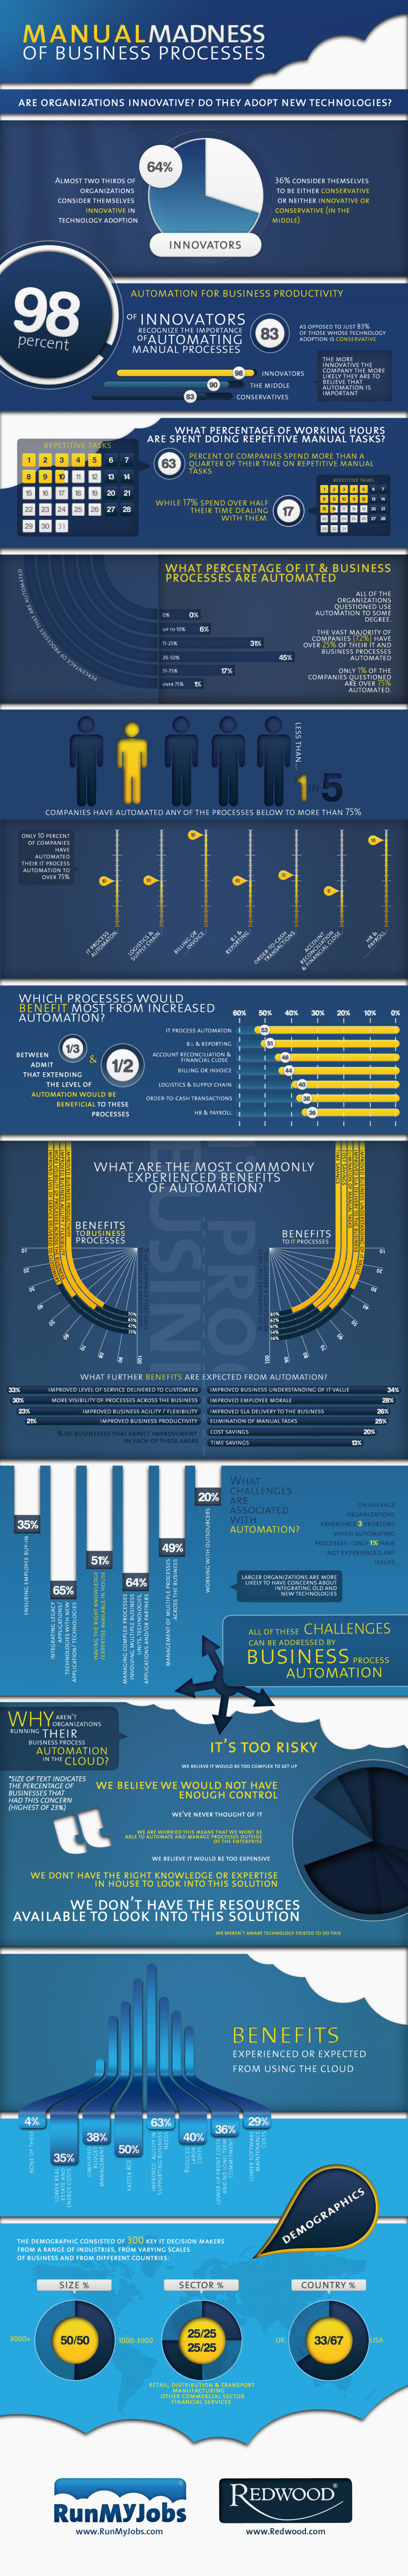 Manual Madness of Business and IT Process Automation Infographic